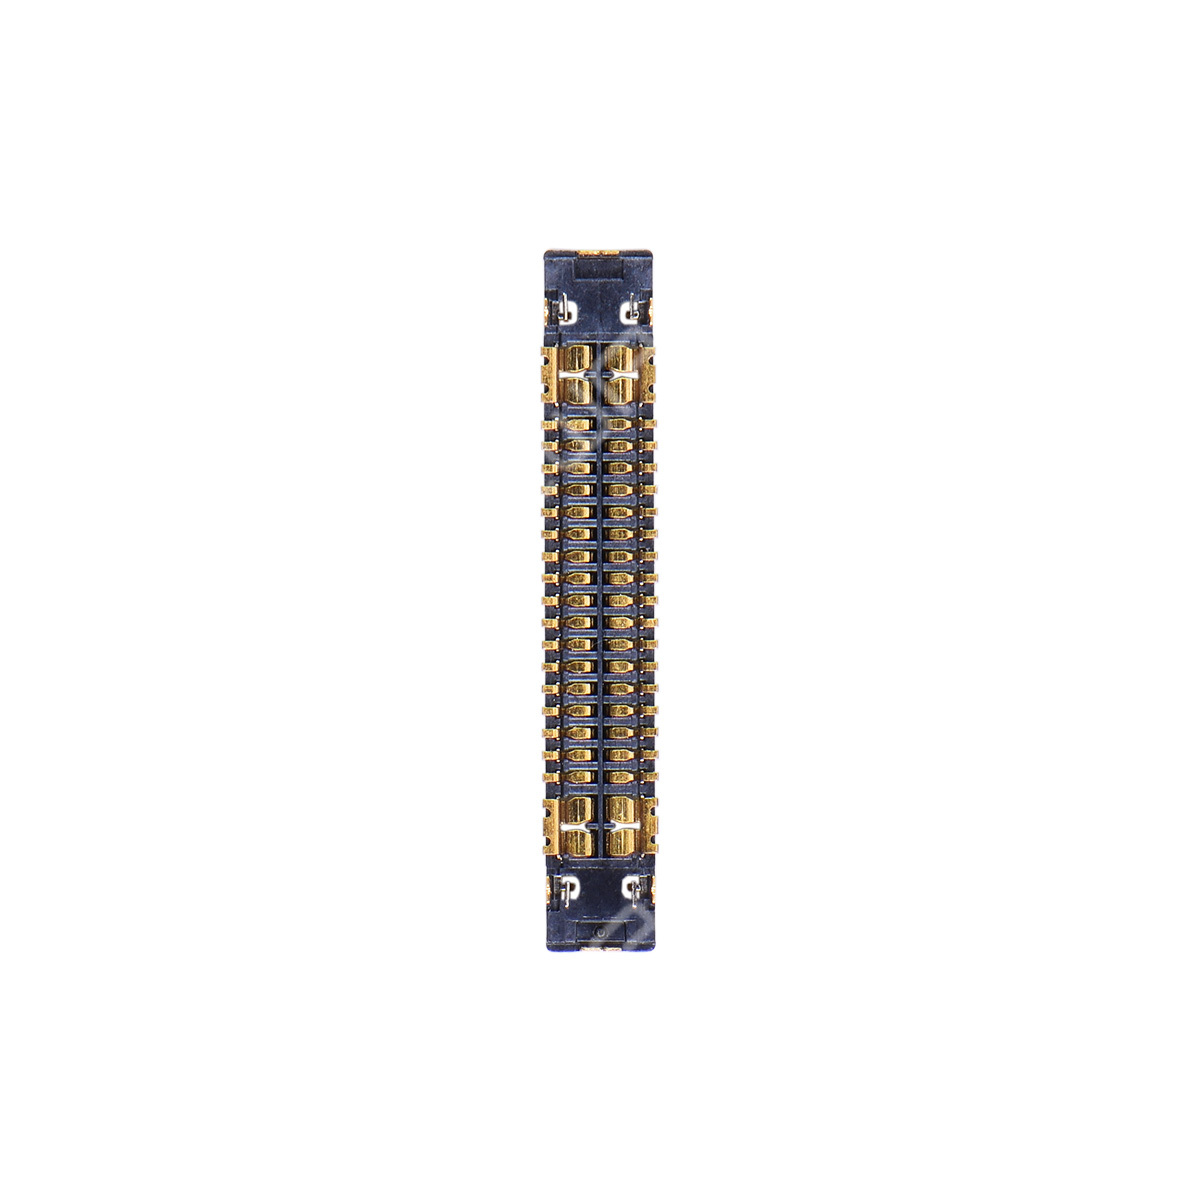 DOCK Charging Port Connector (J2800)  Replacement For iPhone 11